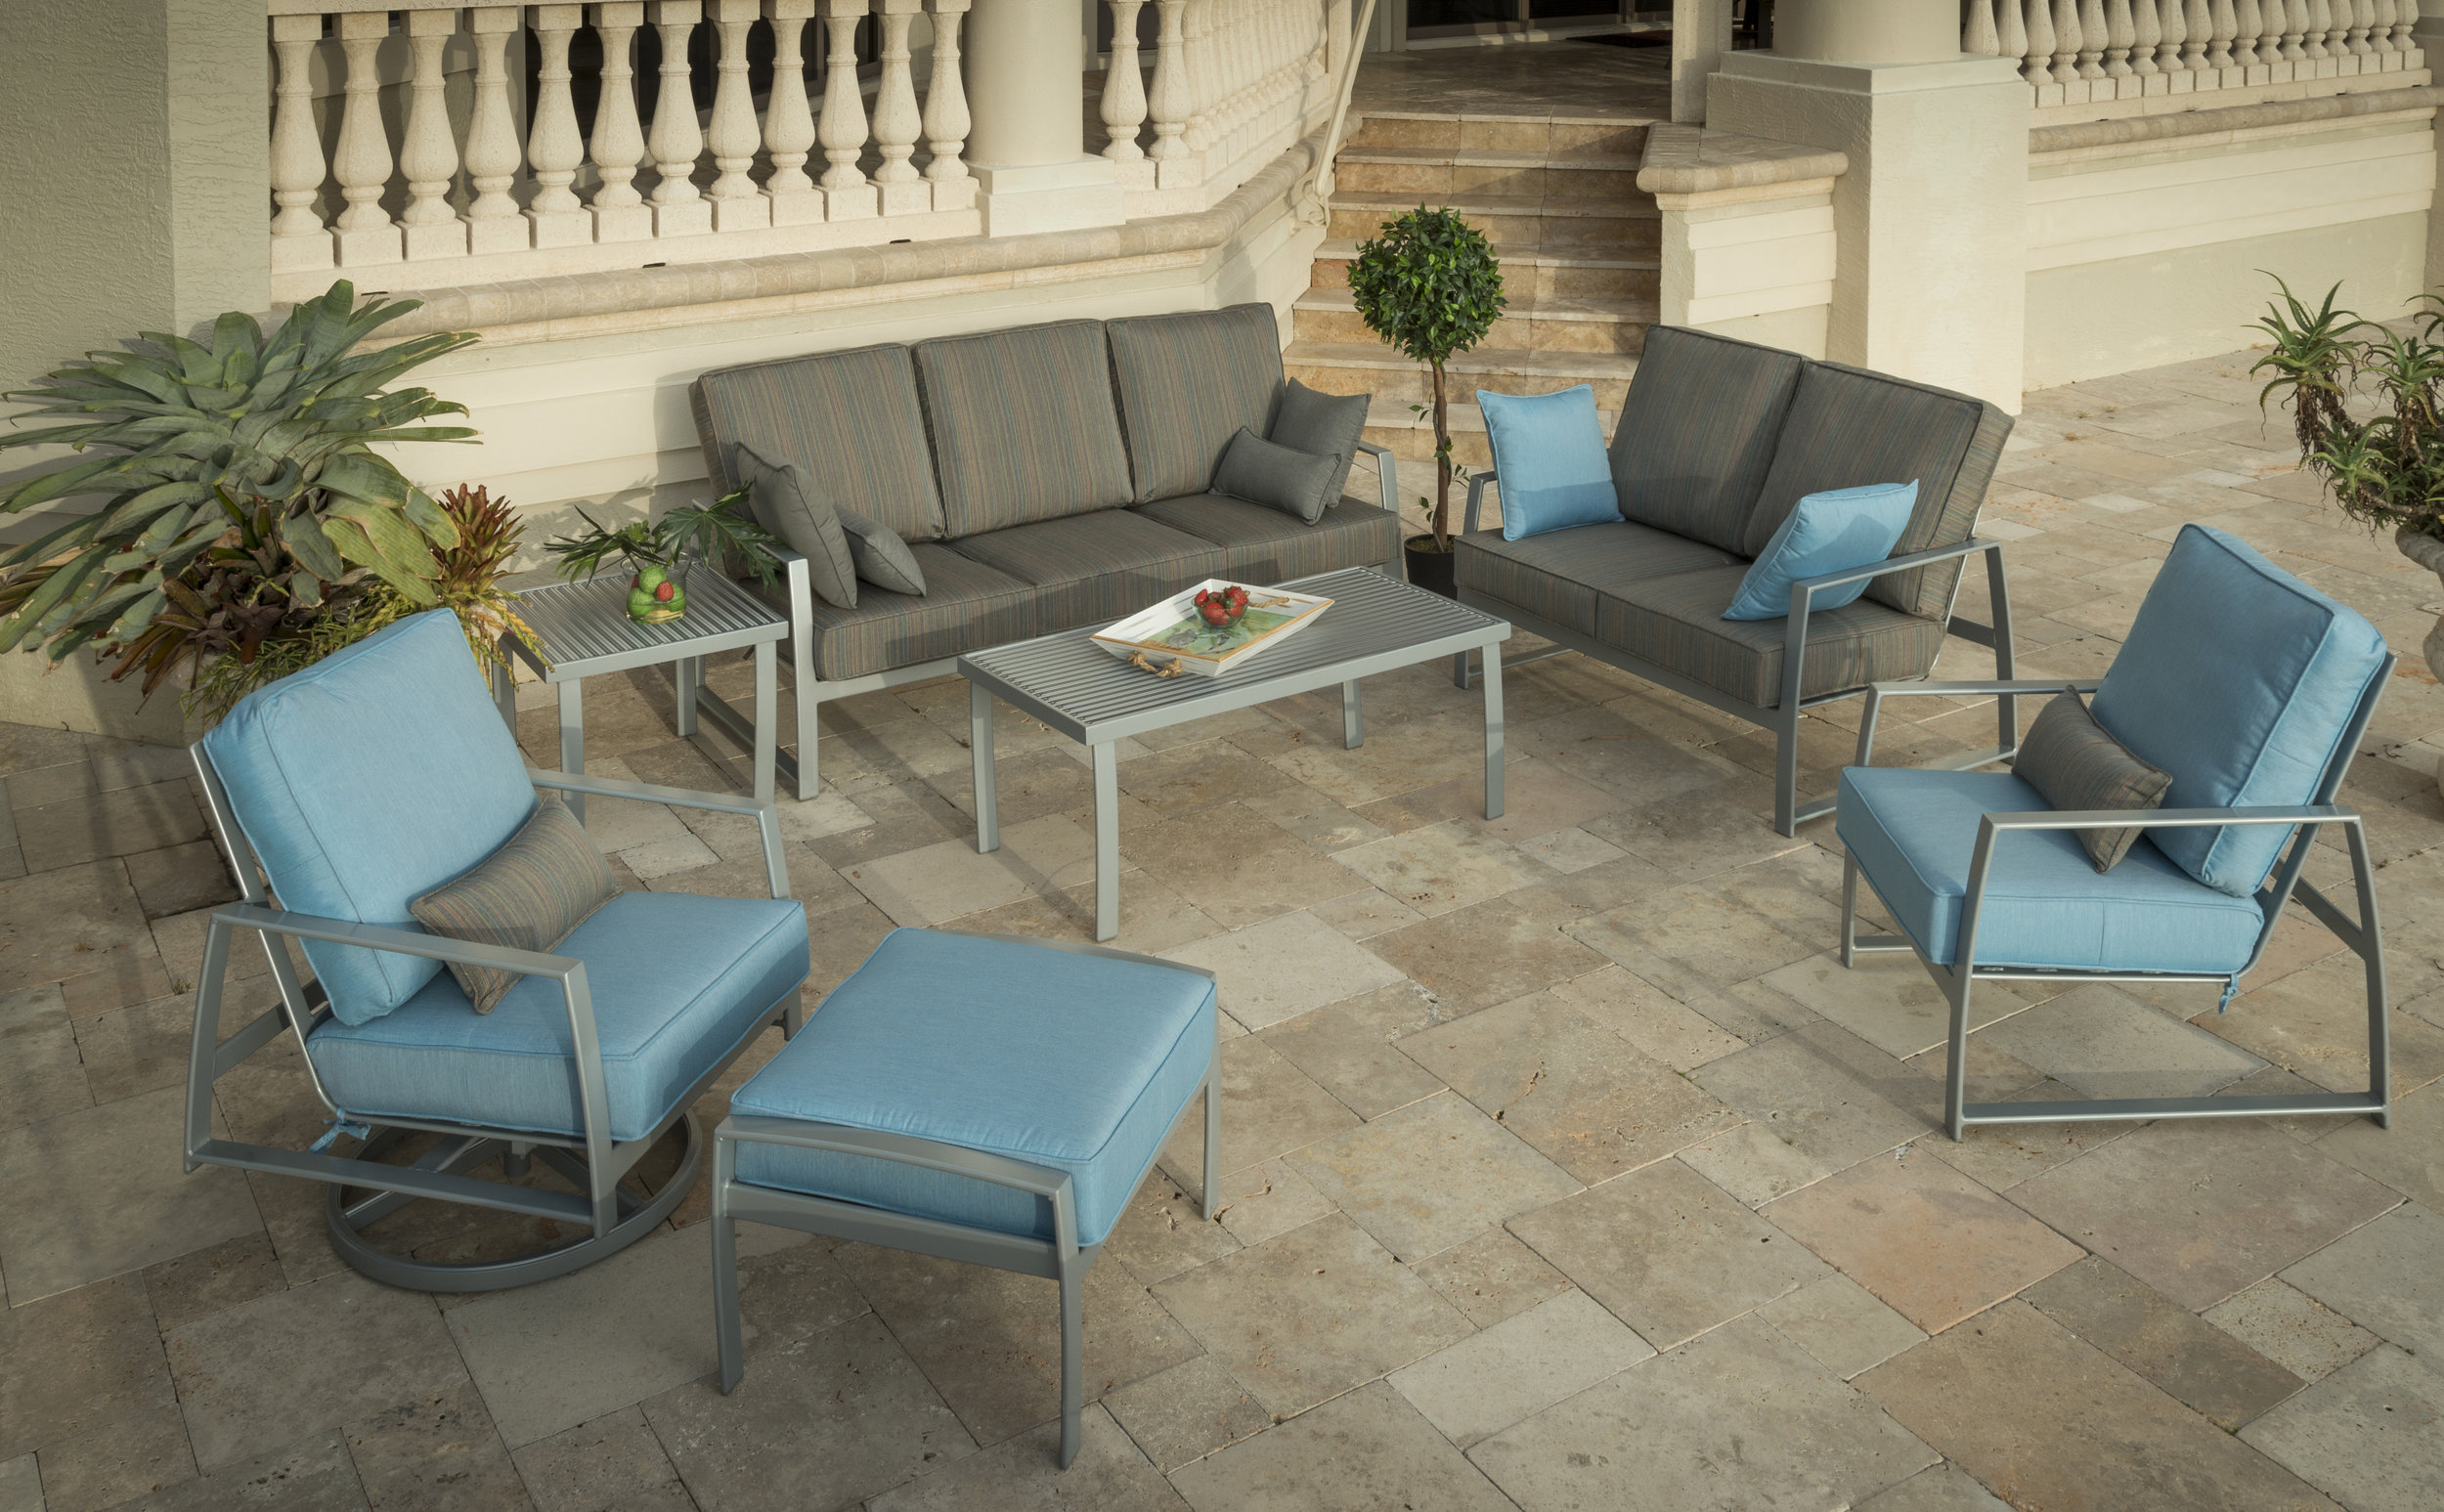 Krisp deep seating powder coated aluminum frame sofa, loveseat, swivel action lounge chair, lounge chair and ottoman. Boardwalk aluminum coffee and side tables.